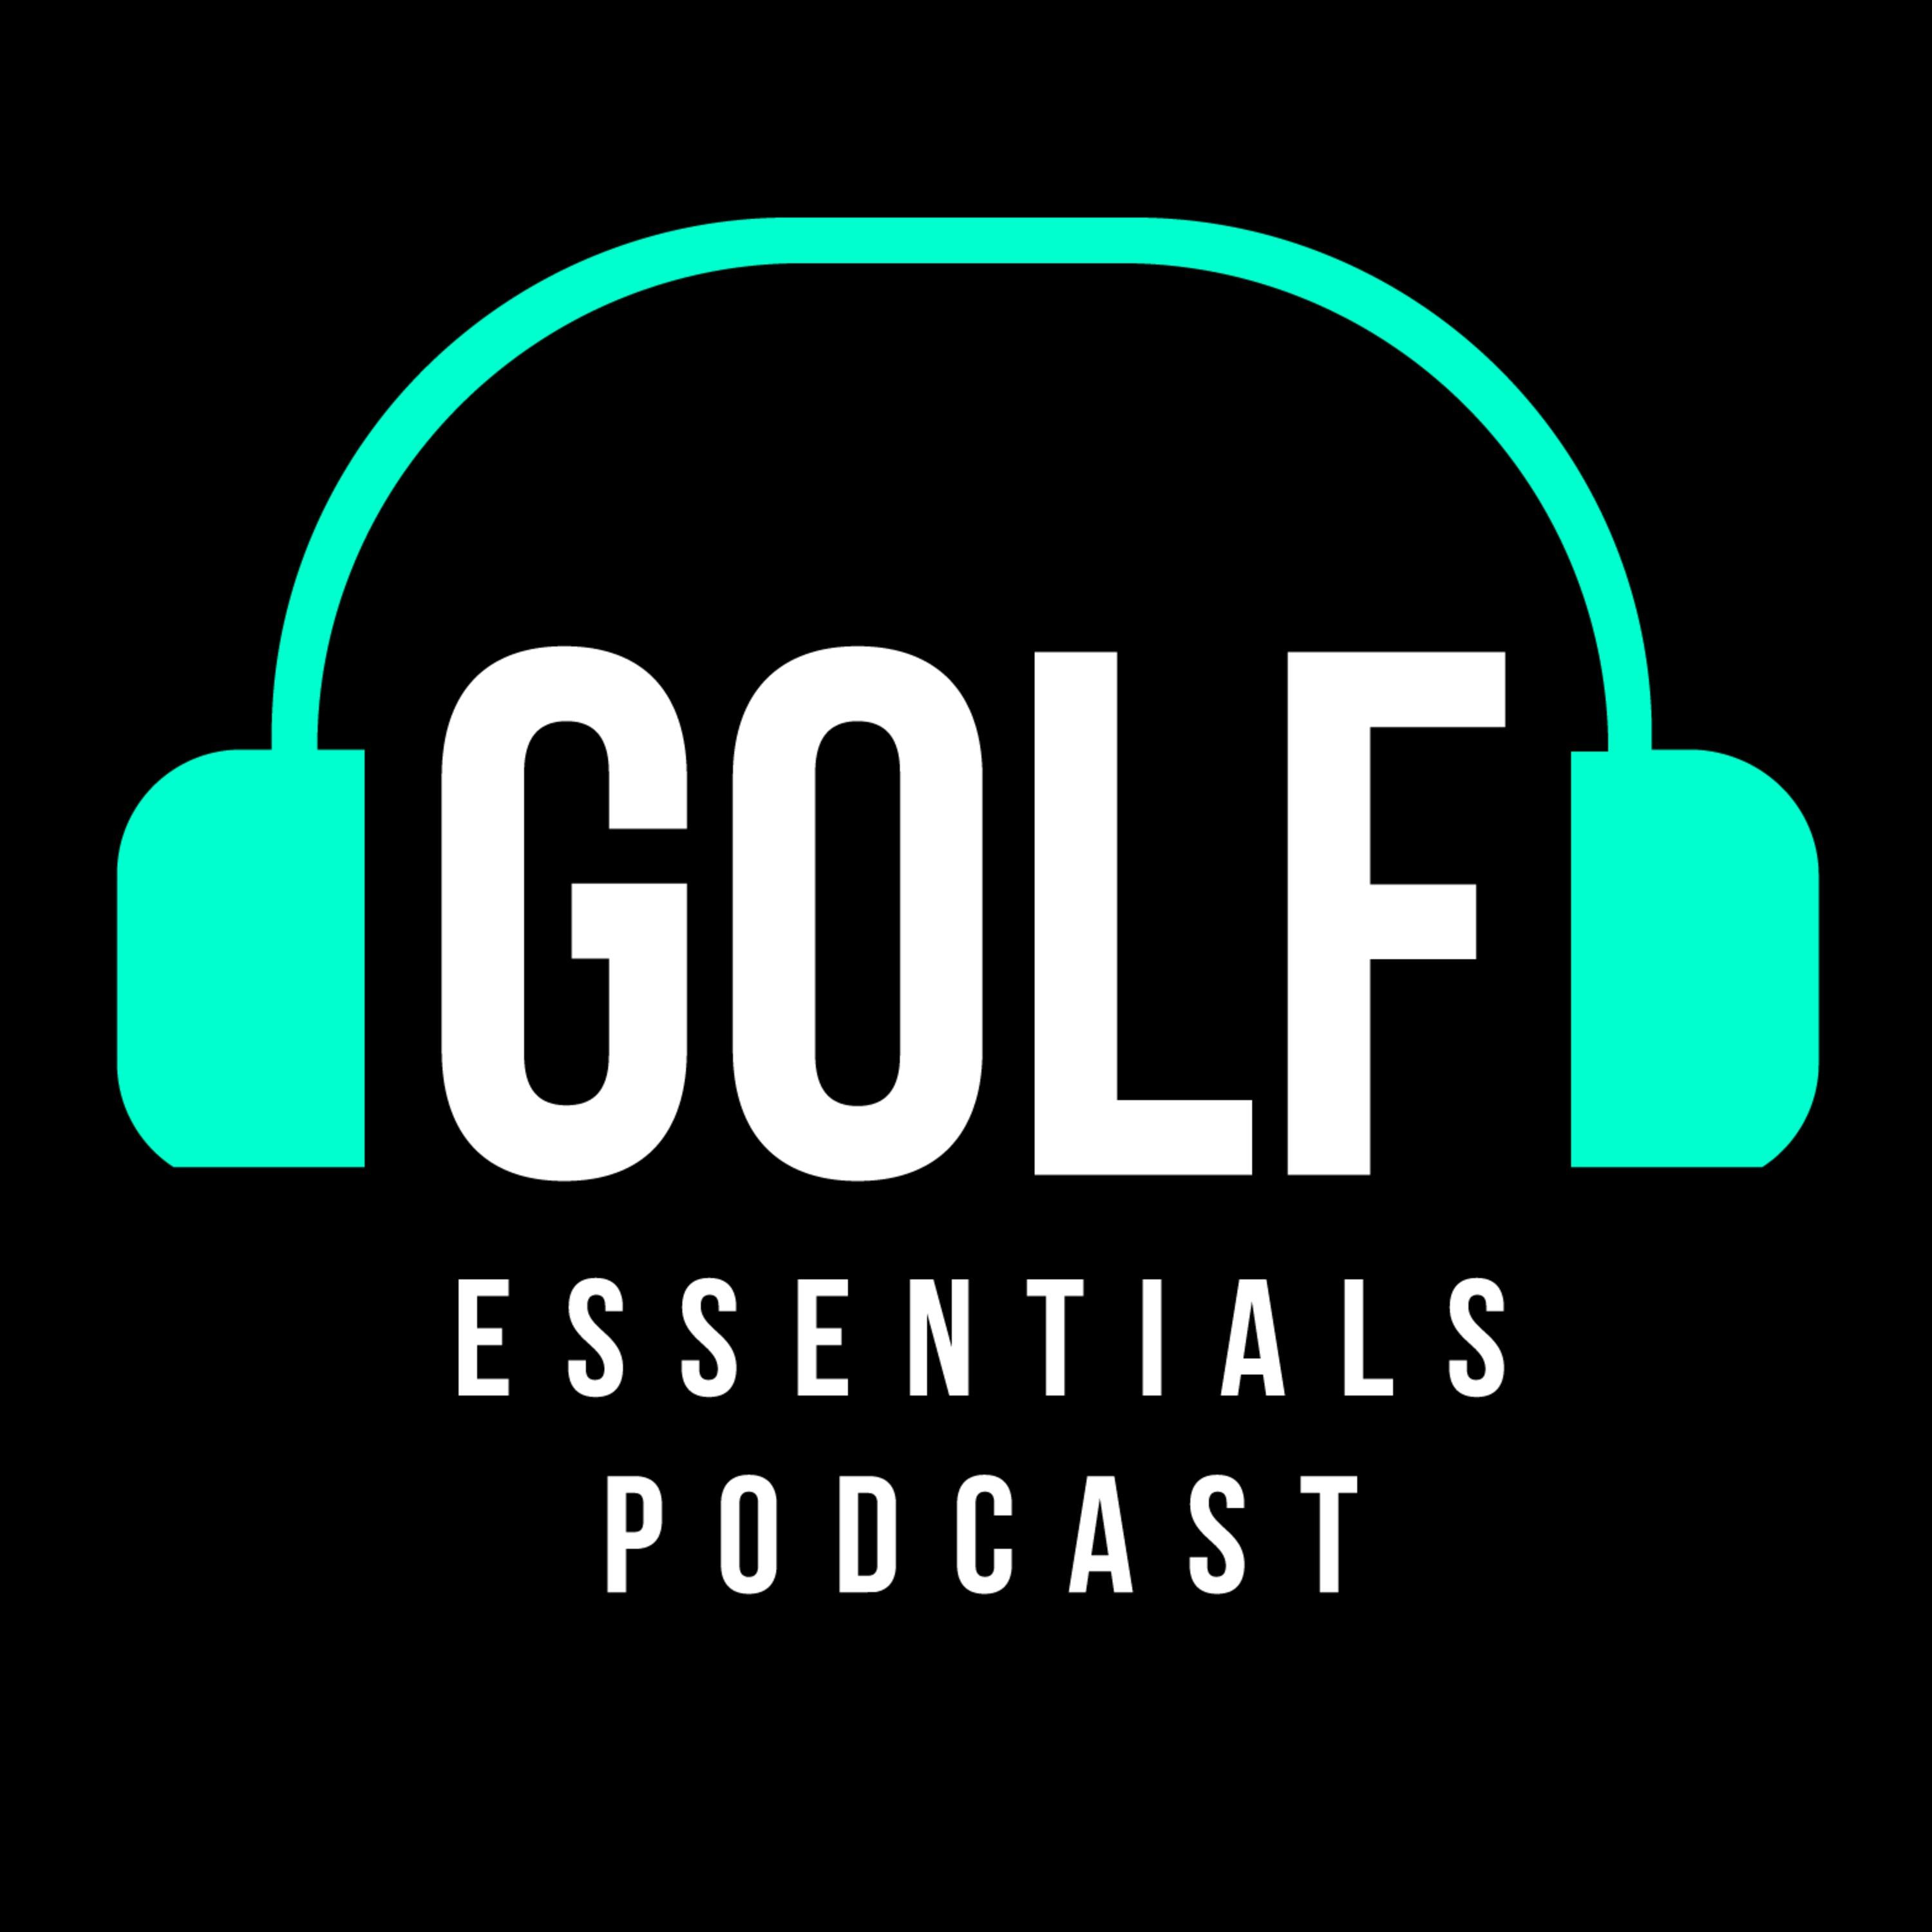 Golf Kicks Your Ass Sometimes - Discussion on Handling Bad Rounds Optimally